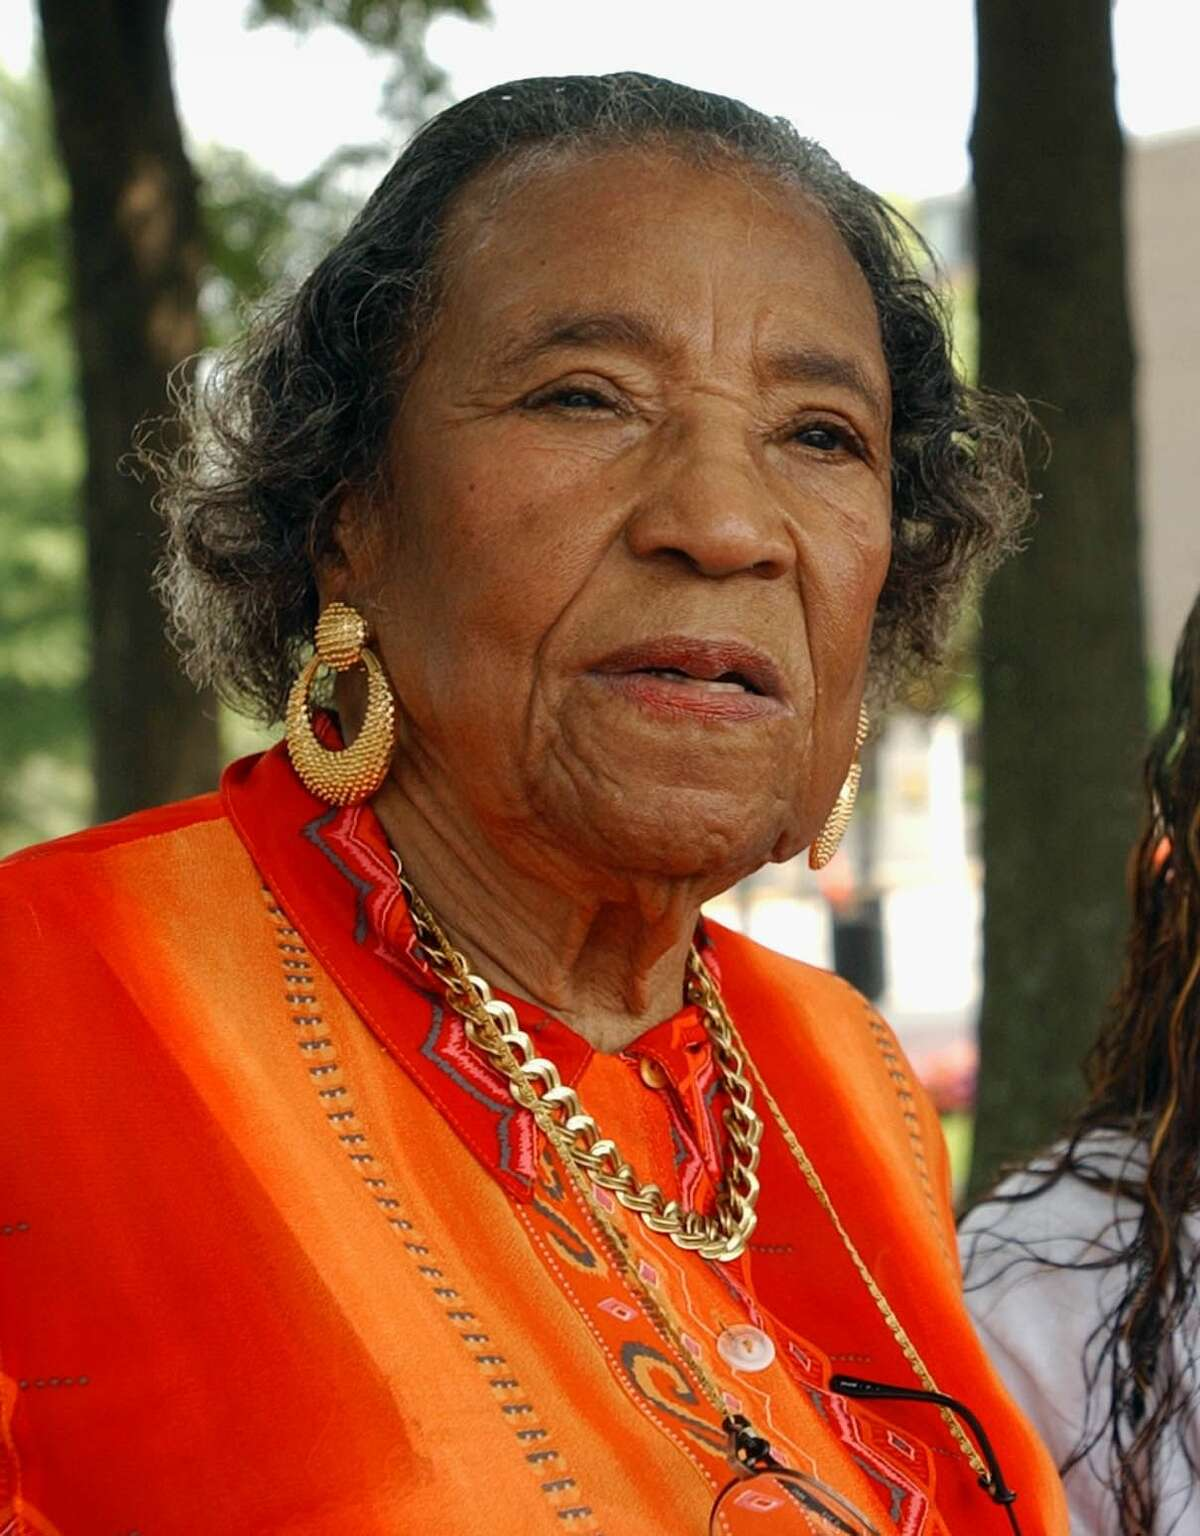 """In this Aug. 26, 2003, file photo, Amelia Boynton, Robinson appears at an American Civil Rights Education Services tour at the Martin Luther King, Jr. National Historic Site in Atlanta. Boynton Robinson, a civil rights activist who nearly died while helping lead the Selma march on """"Bloody Sunday,"""" championed voting rights for blacks, and was the first black woman to run for Congress in Alabama, died Wednesday, Aug. 26, 2015. She was 104. Boynton Robinson was hospitalized in July after having a major stroke and turned 104 on Aug. 18."""